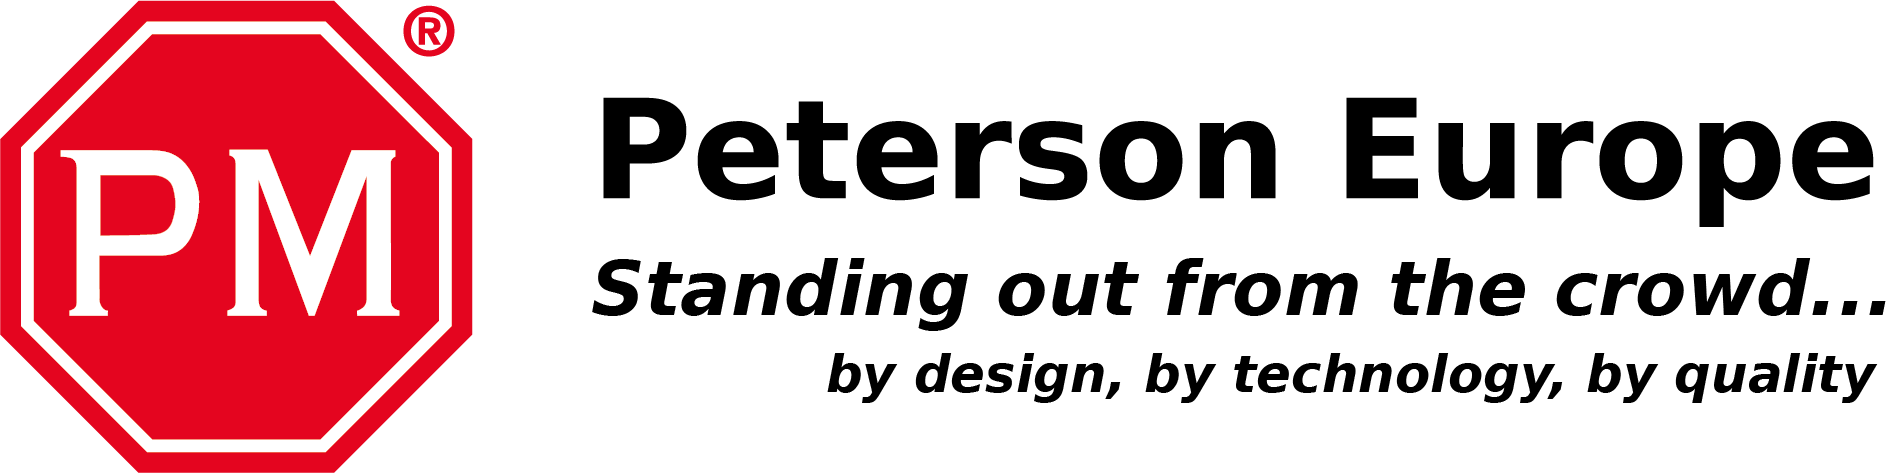 PE-Email-Logo.png